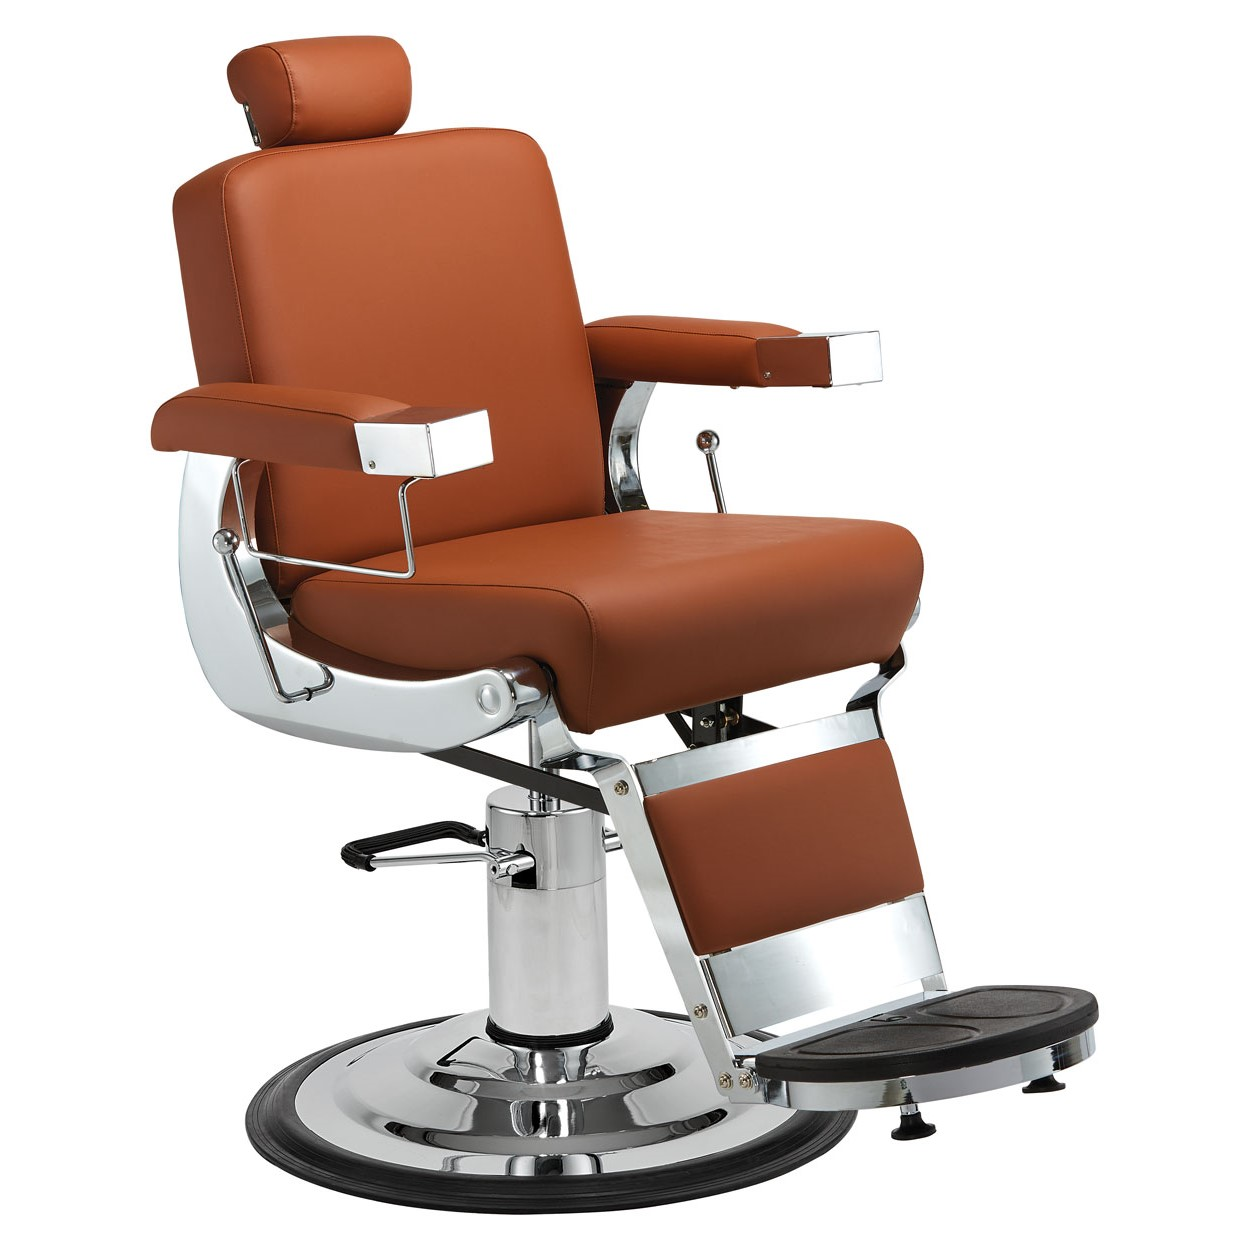 Pibbs Barbiere Barber Chair  main product image